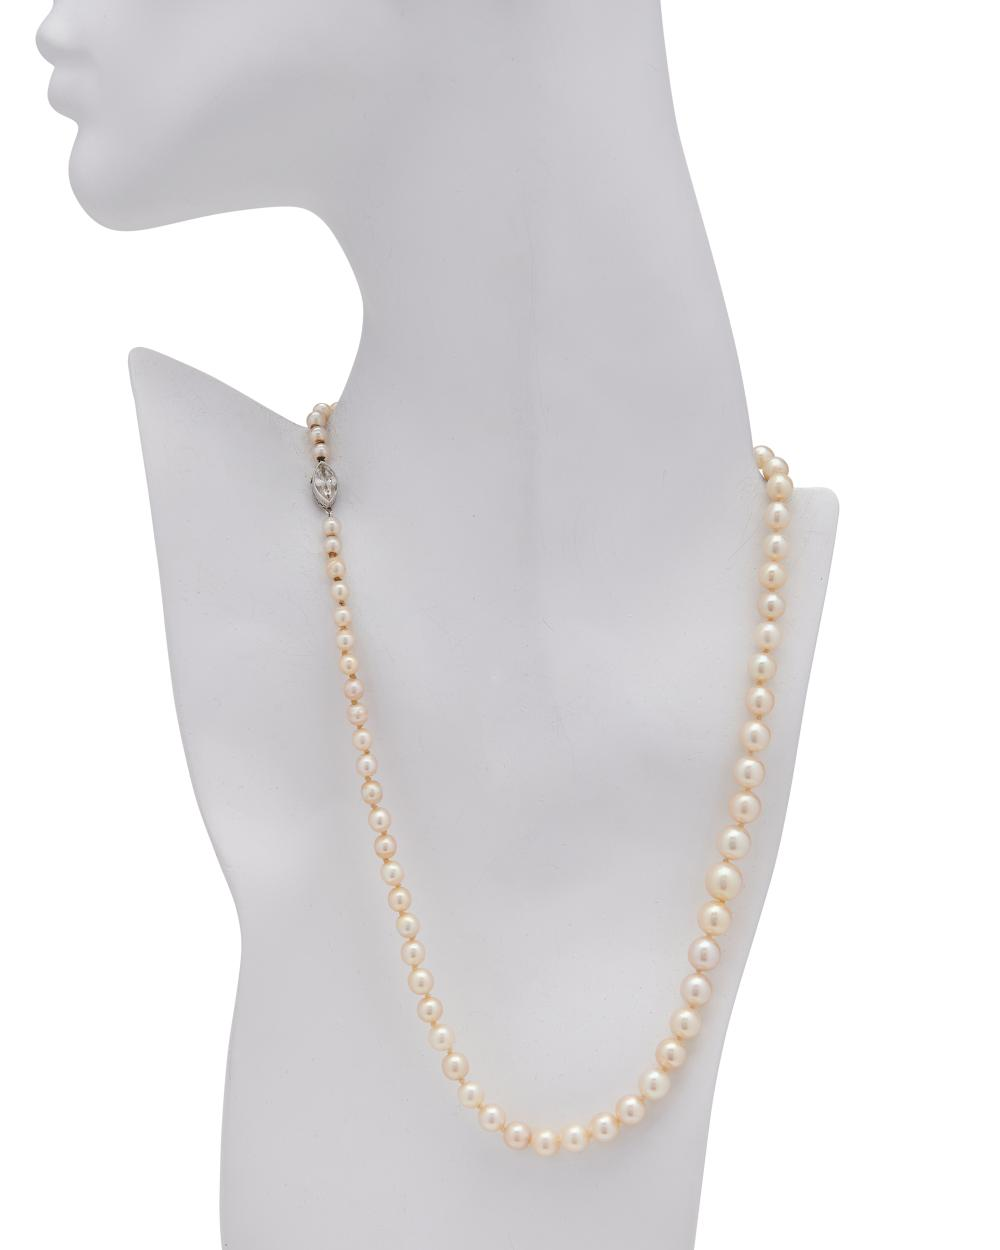 J.E. CALDWELL & CO. Natural Pearl and Diamond Necklace